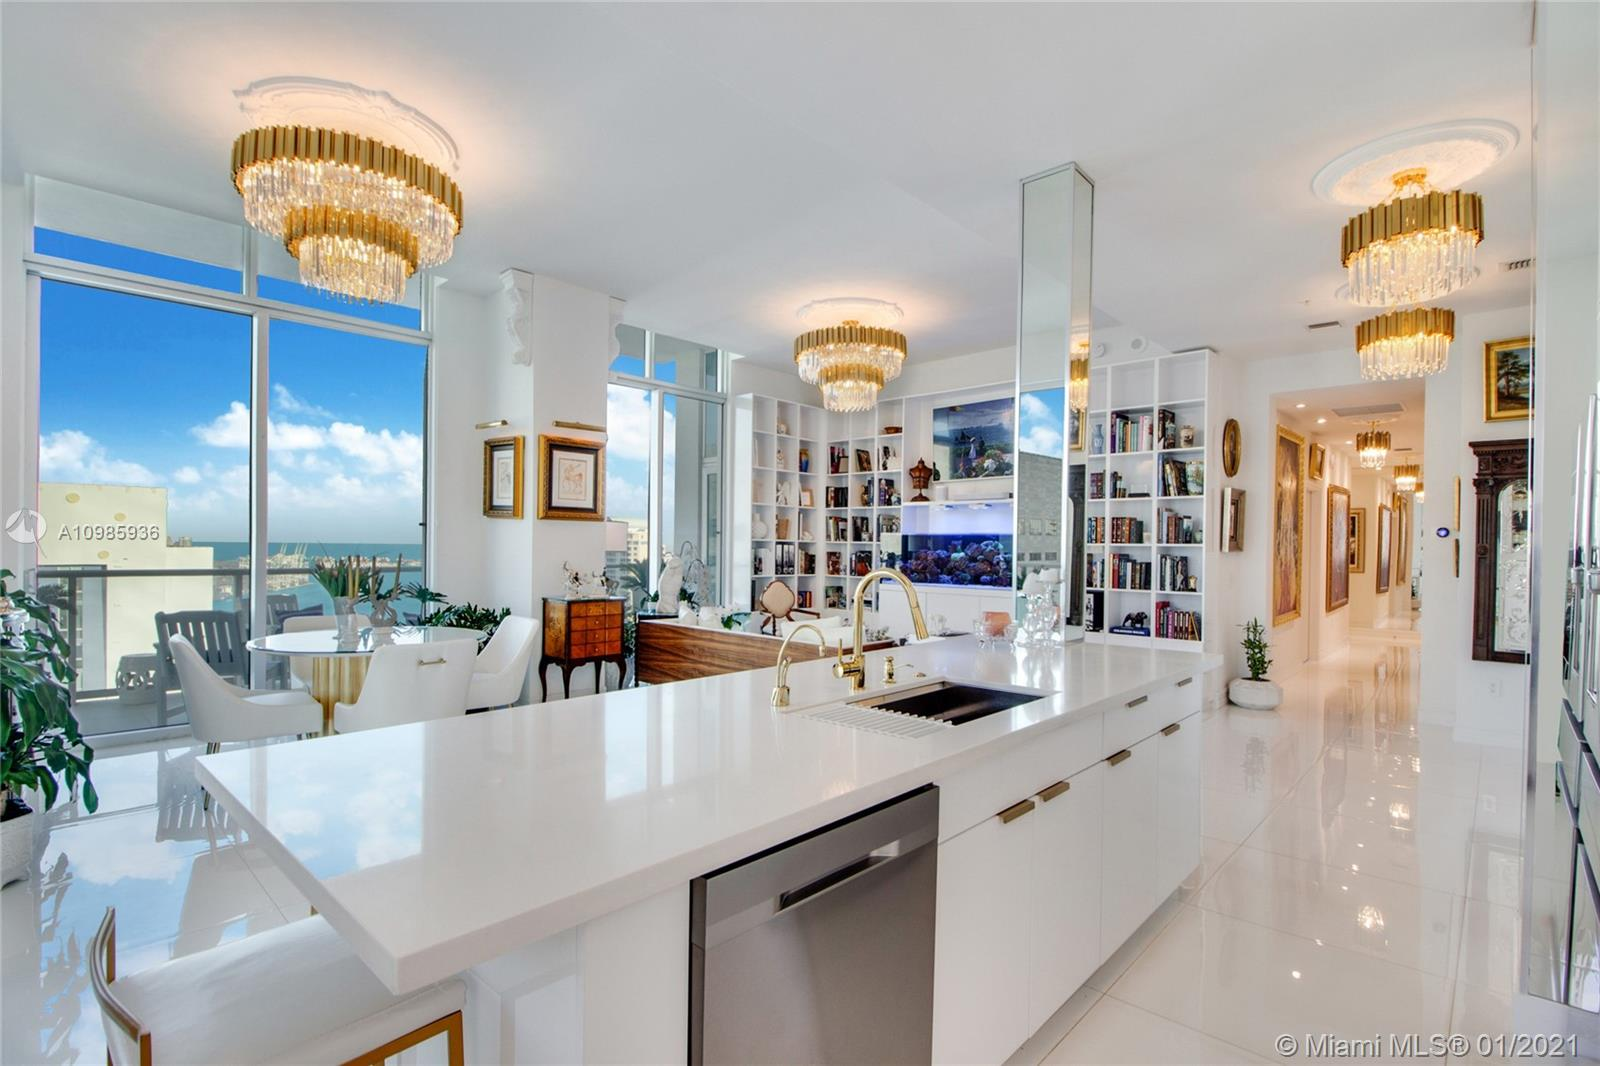 Welcome to 4006 at Met 1, where beauty and luxury meet comfort and leisure. Completely redesigned in 2020 in palatial white and gold, this Downtown Miami penthouse offers a unique opportunity. Entertain effortlessly in the lounge with custom cabinetry boasting a 100+ wine bottle cellar, built-in ice maker, and a sleek dual tap draft beer refrigerator. The lounge also has direct access to the wraparound balcony. The stunning kitchen has been expanded and finished with high-end appliances. As you walk through the art-filled gallery/hallway, you'll find the impeccably designed bedrooms, each with custom walk-in closets, spa-like bathrooms, and a second balcony to enjoy privately. Very rare opportunity to own five (5) designated parking spaces in the heart of Downtown Miami.